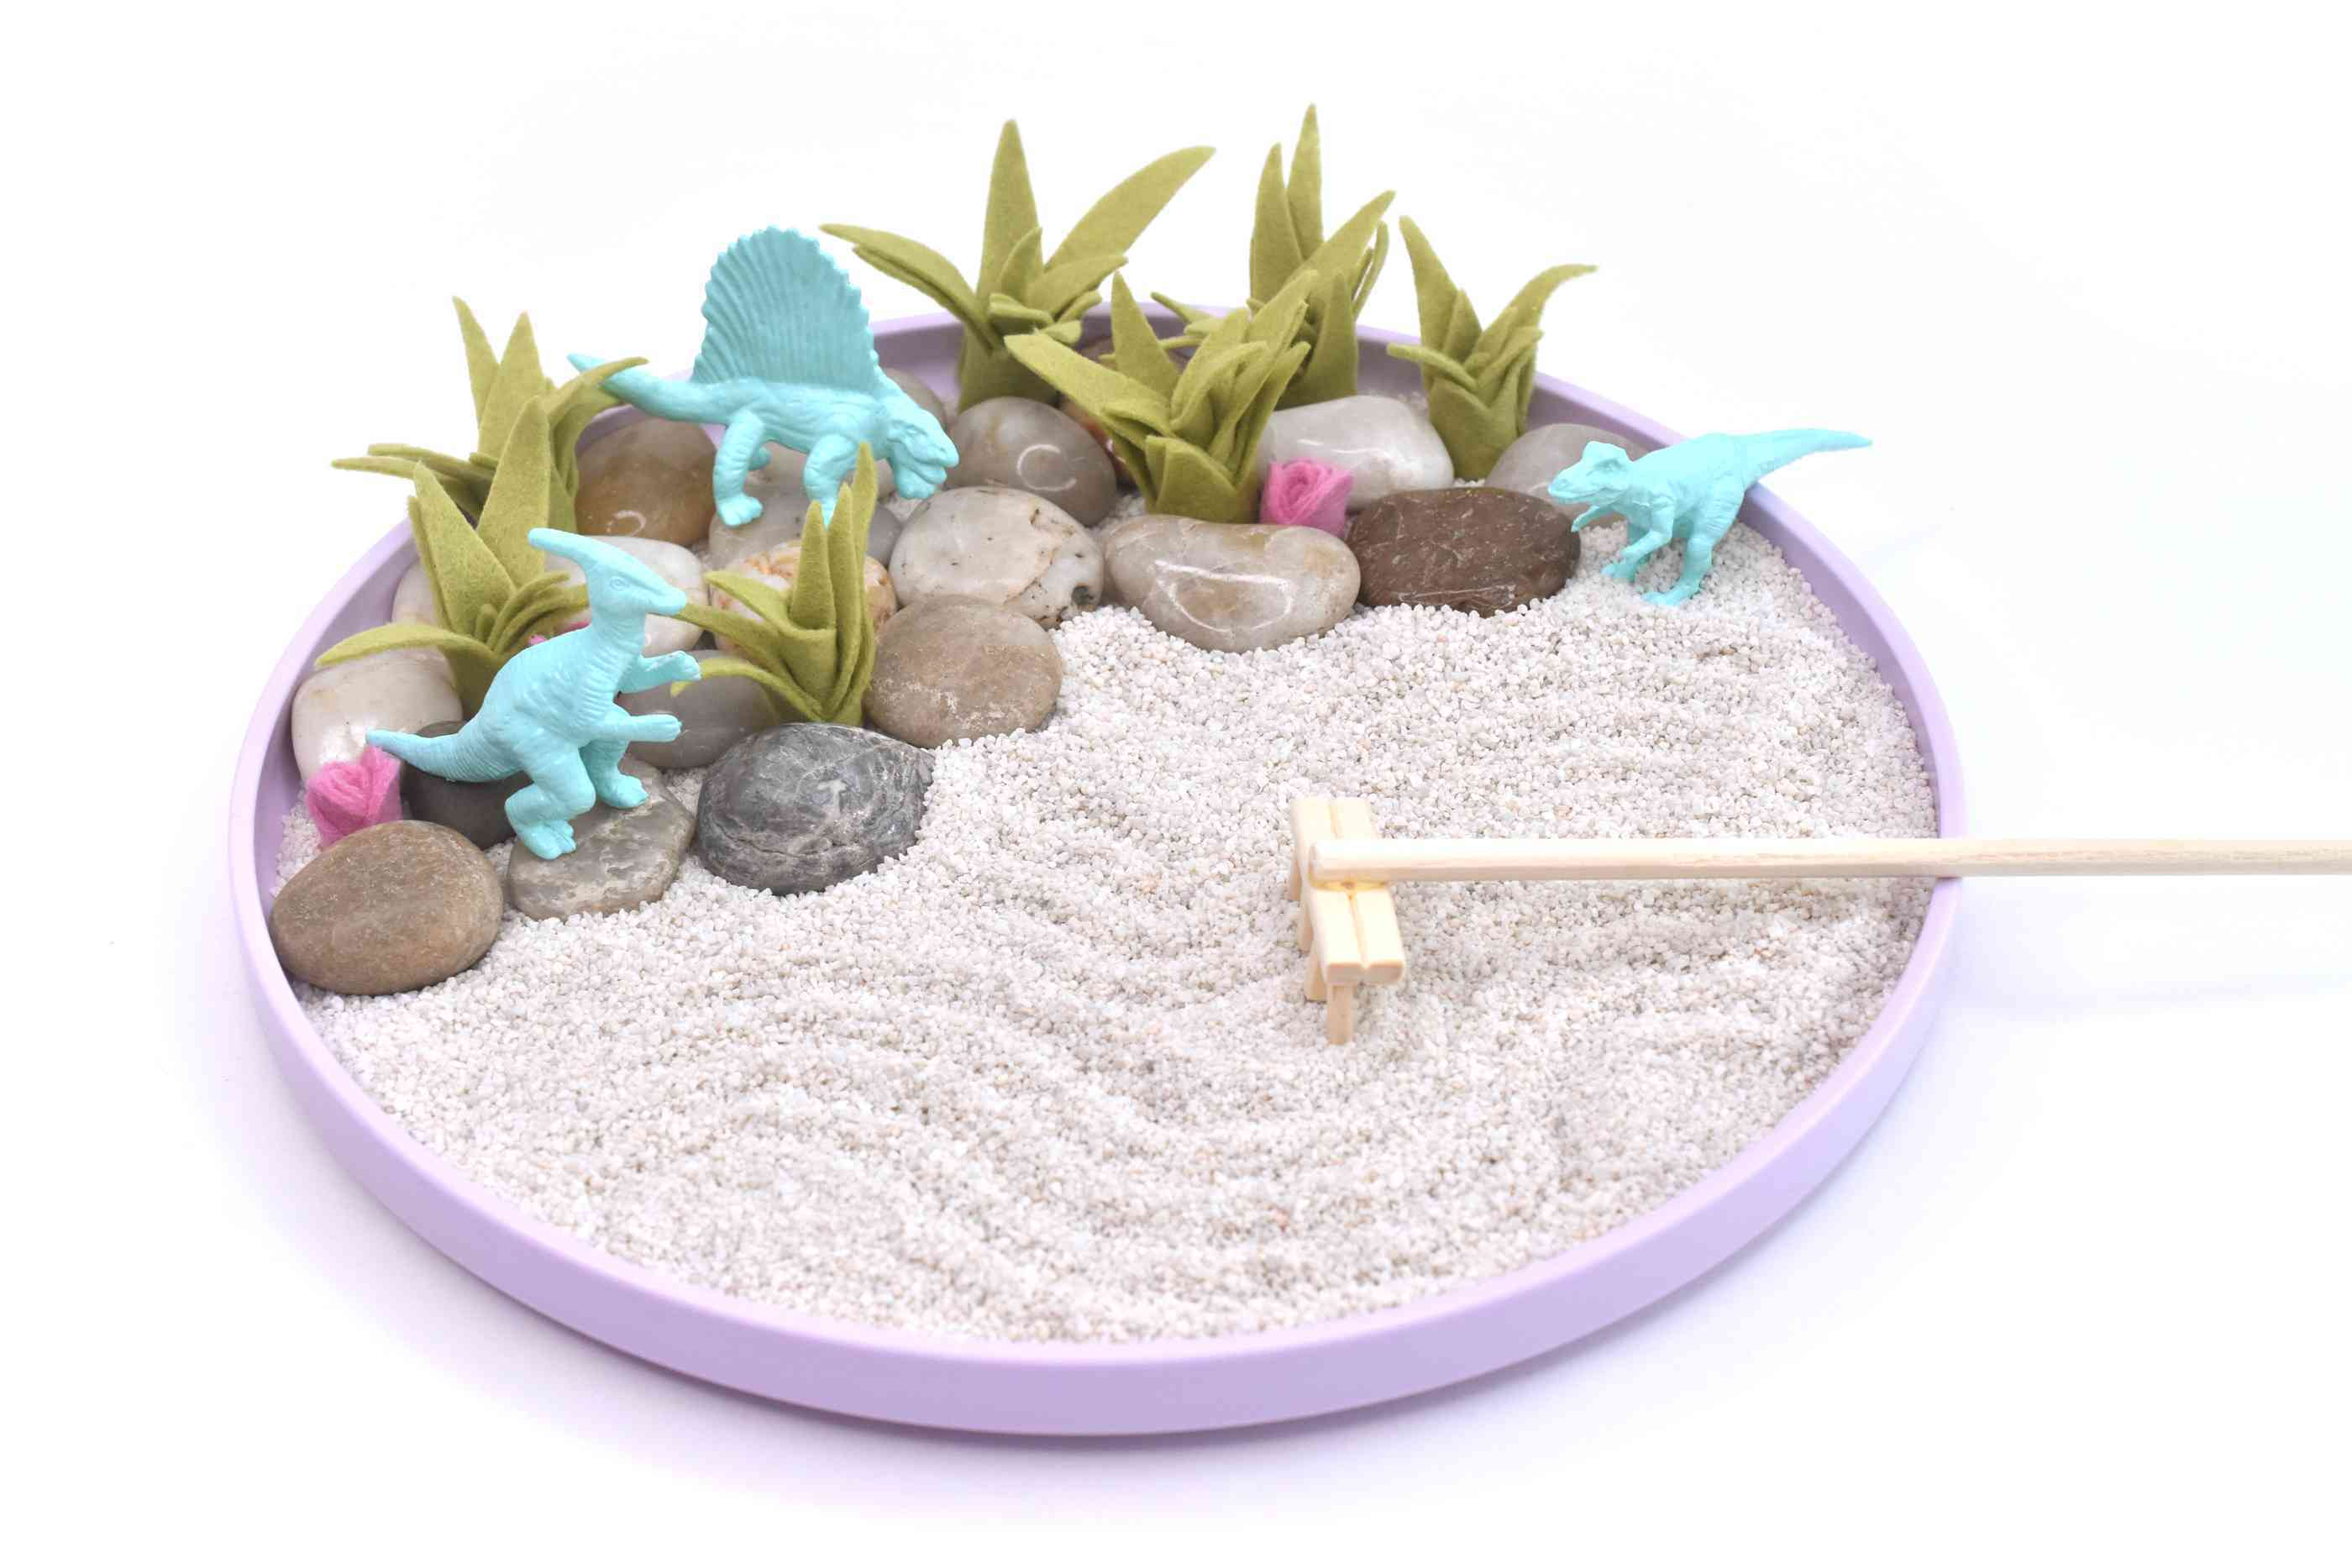 a mindfulness sand garden made with rocks and dinosaur toys